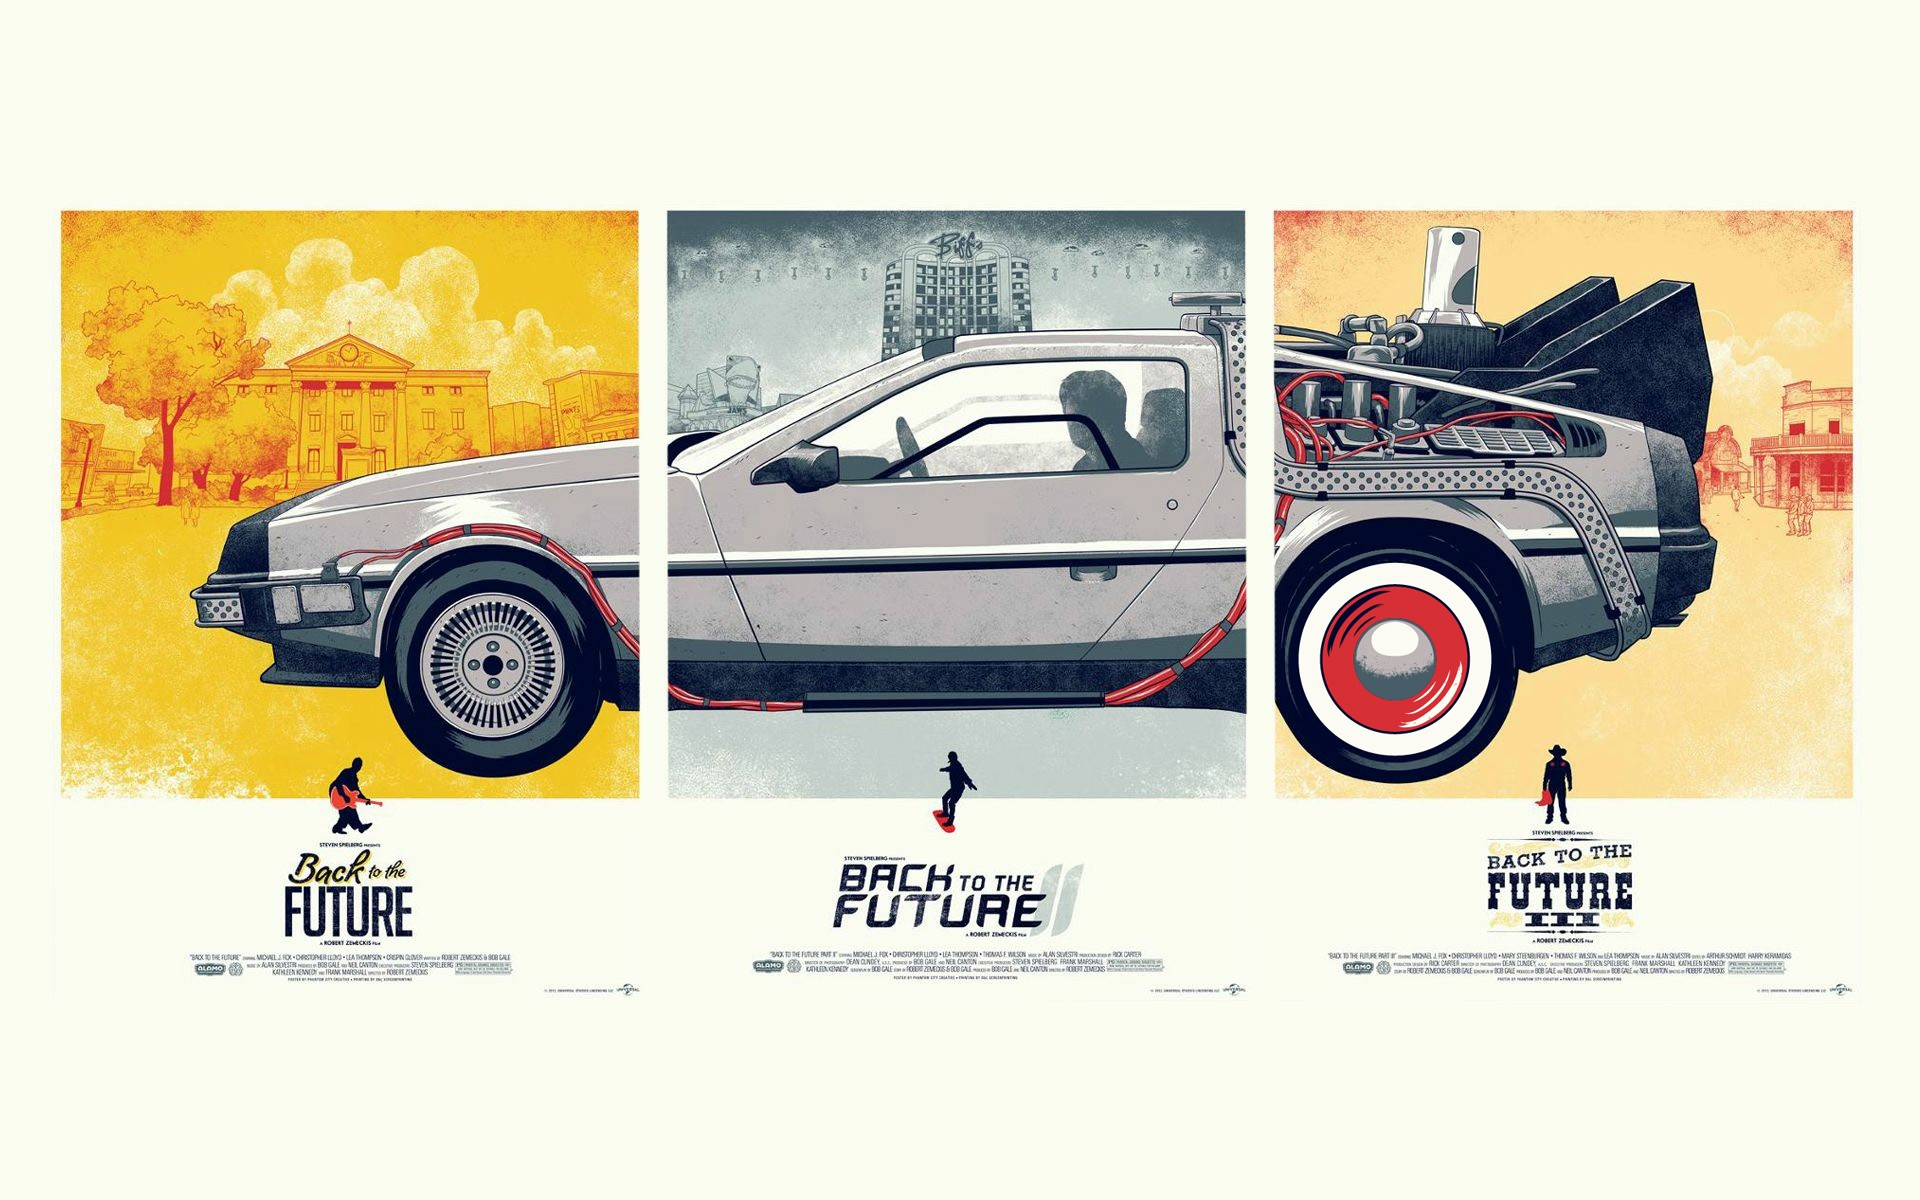 back-to-the-future-wallpaper-phantom-city